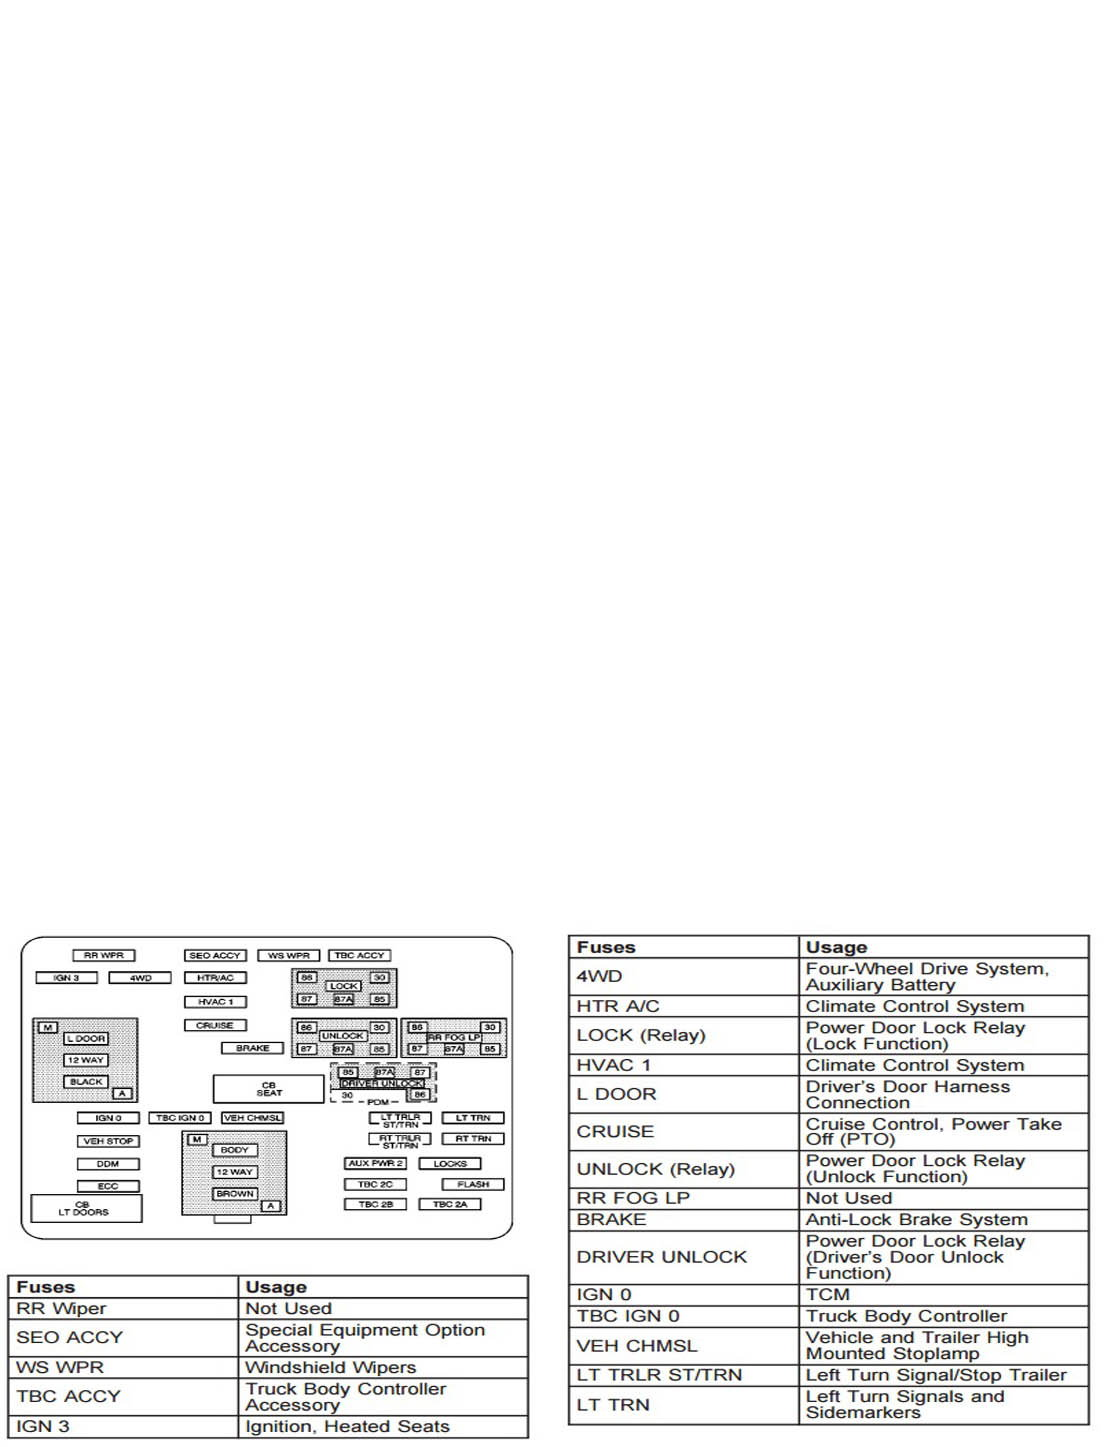 instrument panel fuse box diagram and application